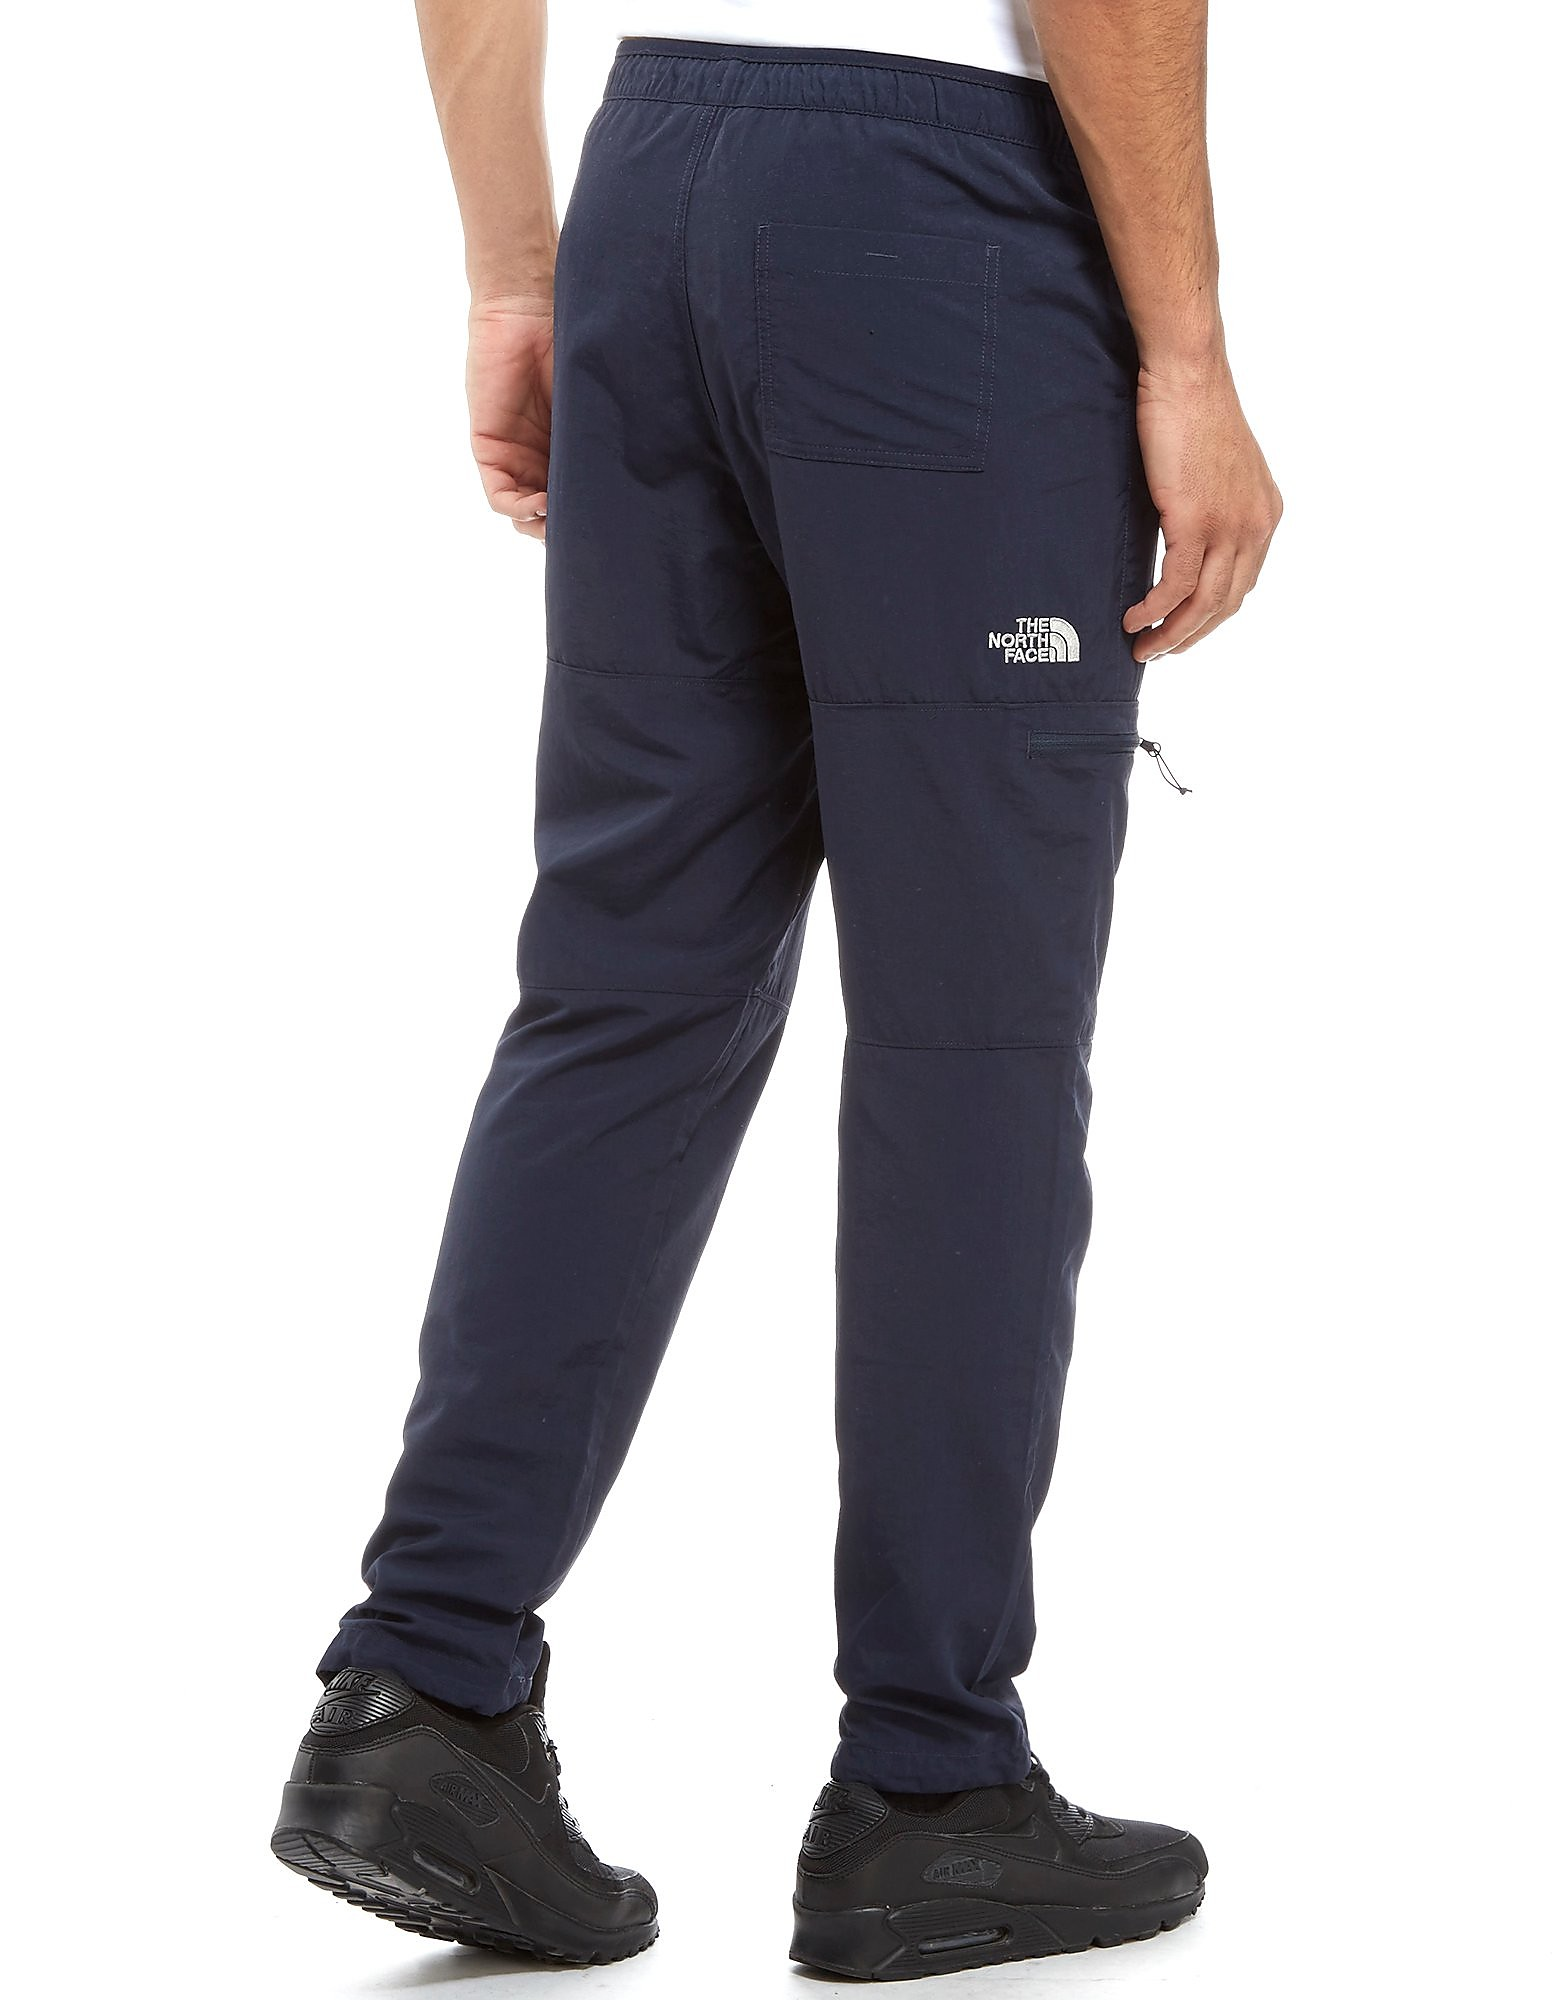 The North Face Z-Pocket Cargo Trousers